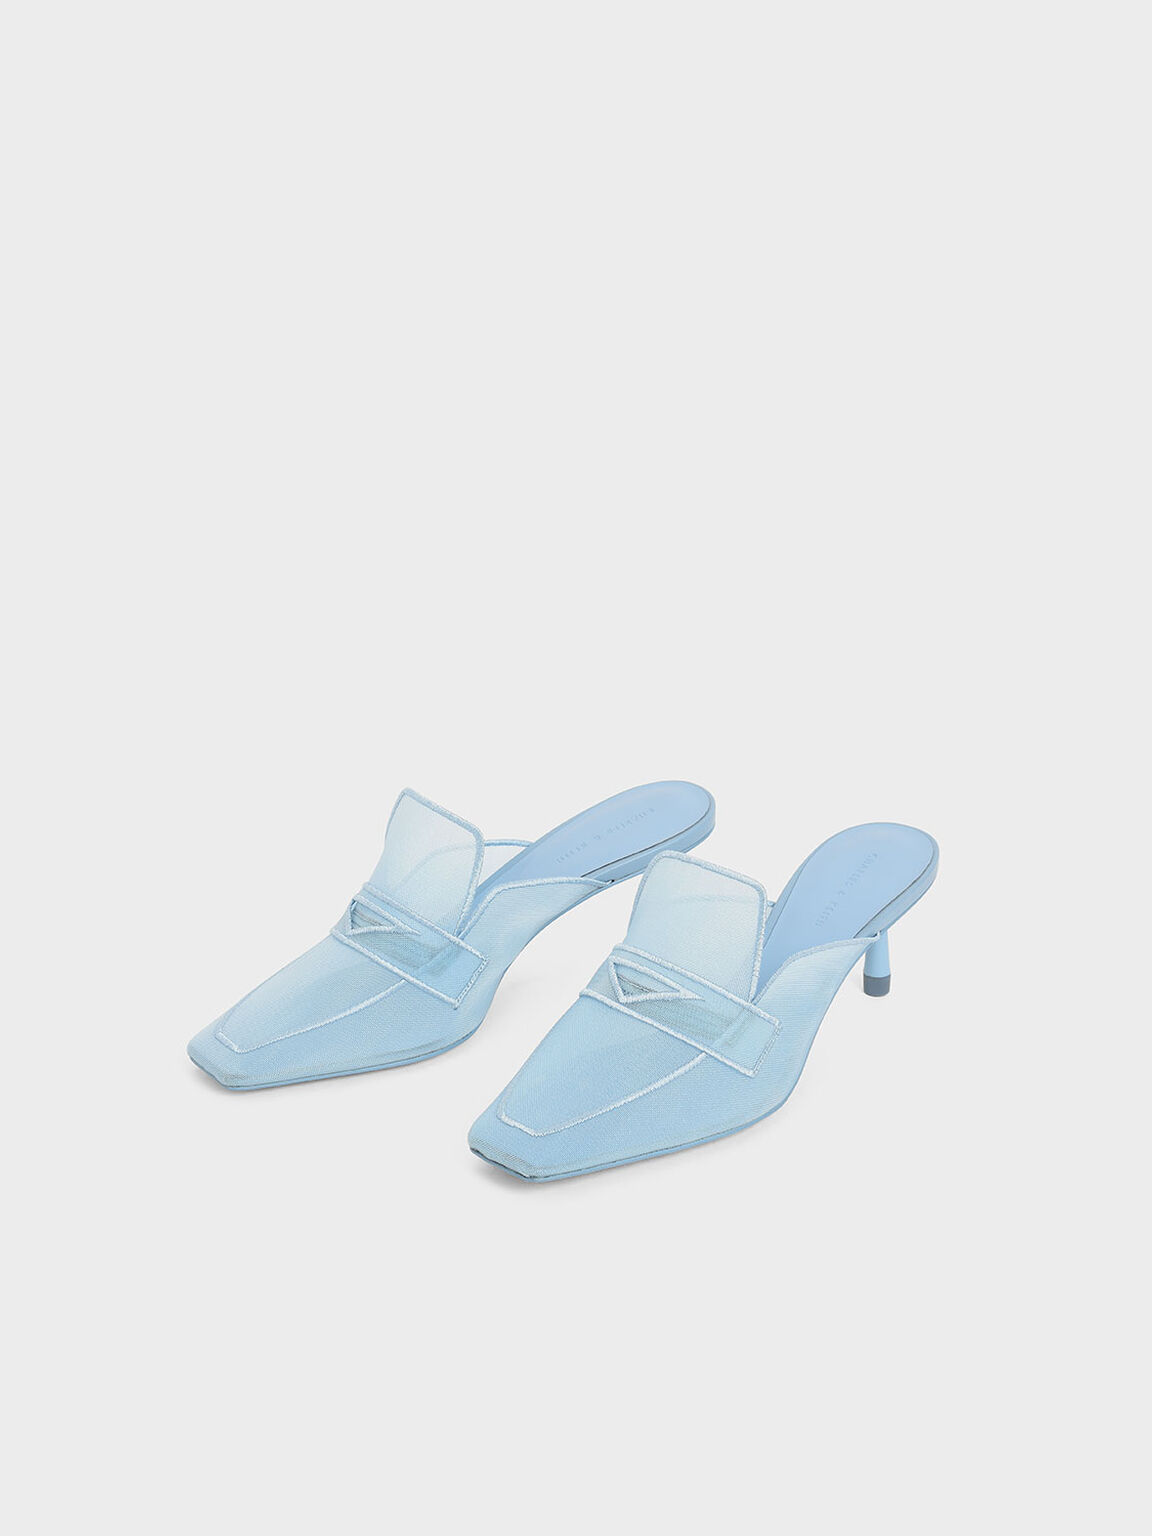 Mesh Loafer Mules, Light Blue, hi-res